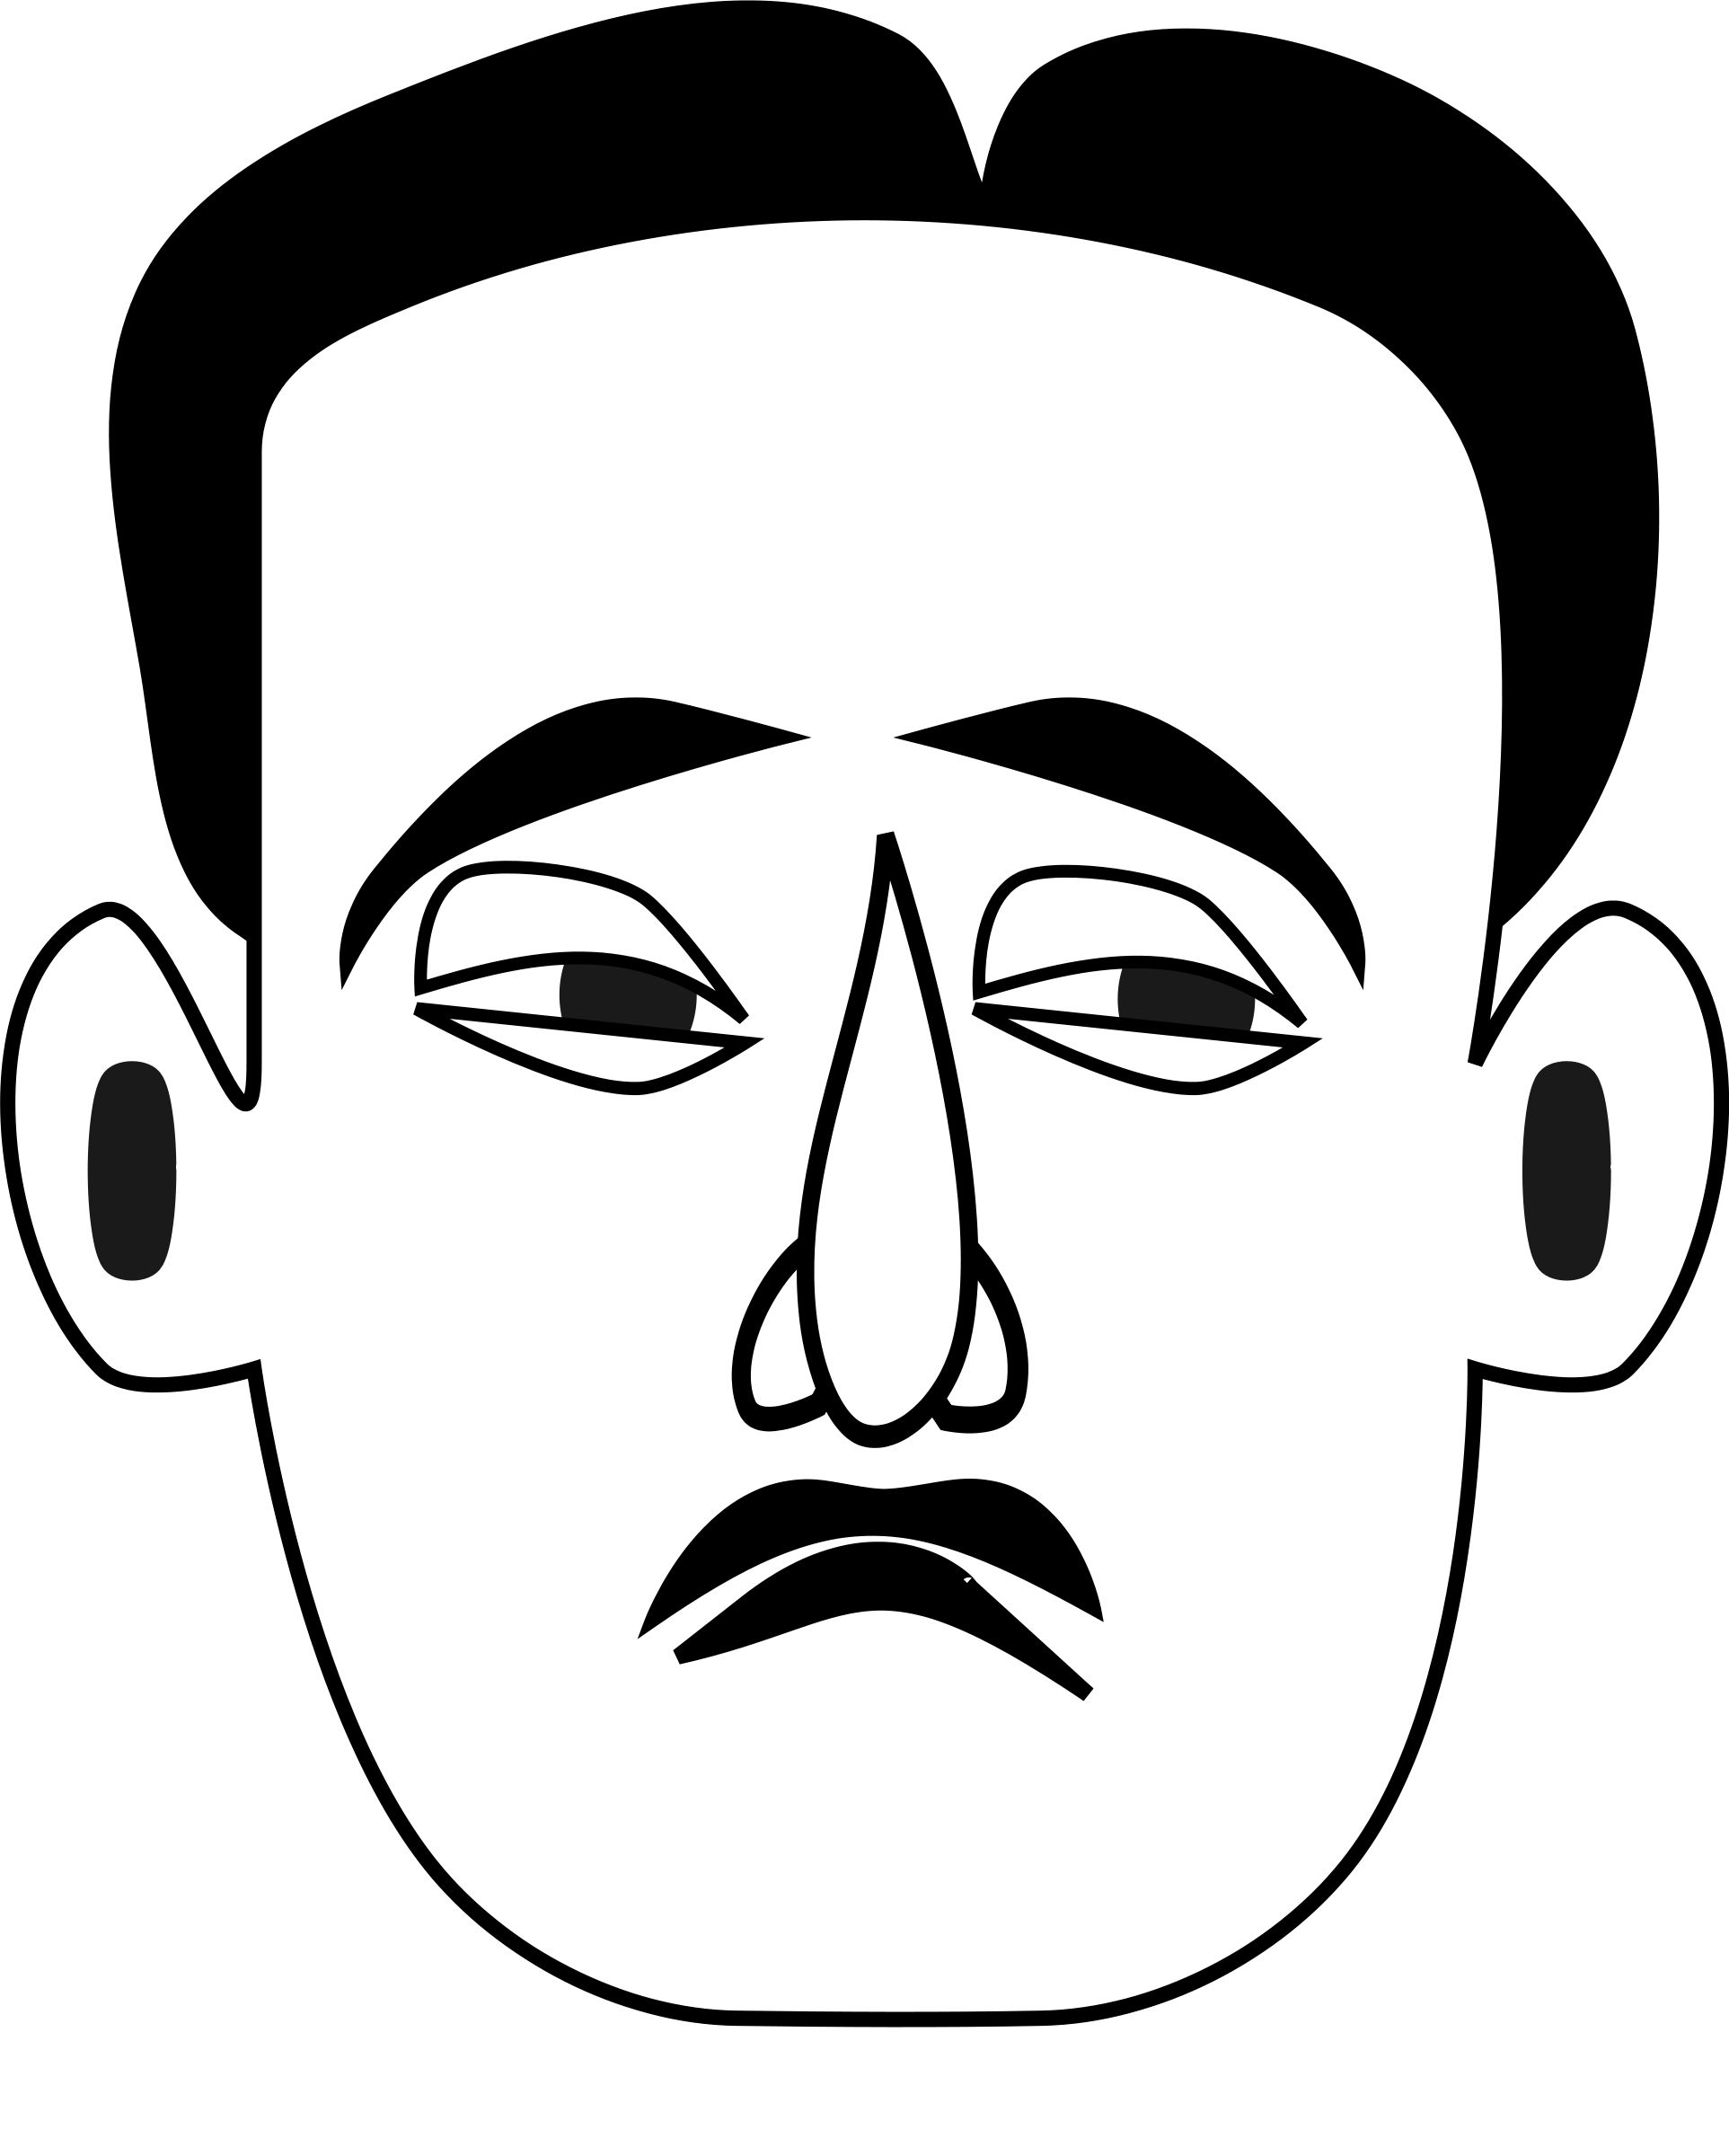 Face clipart man. Best of black and